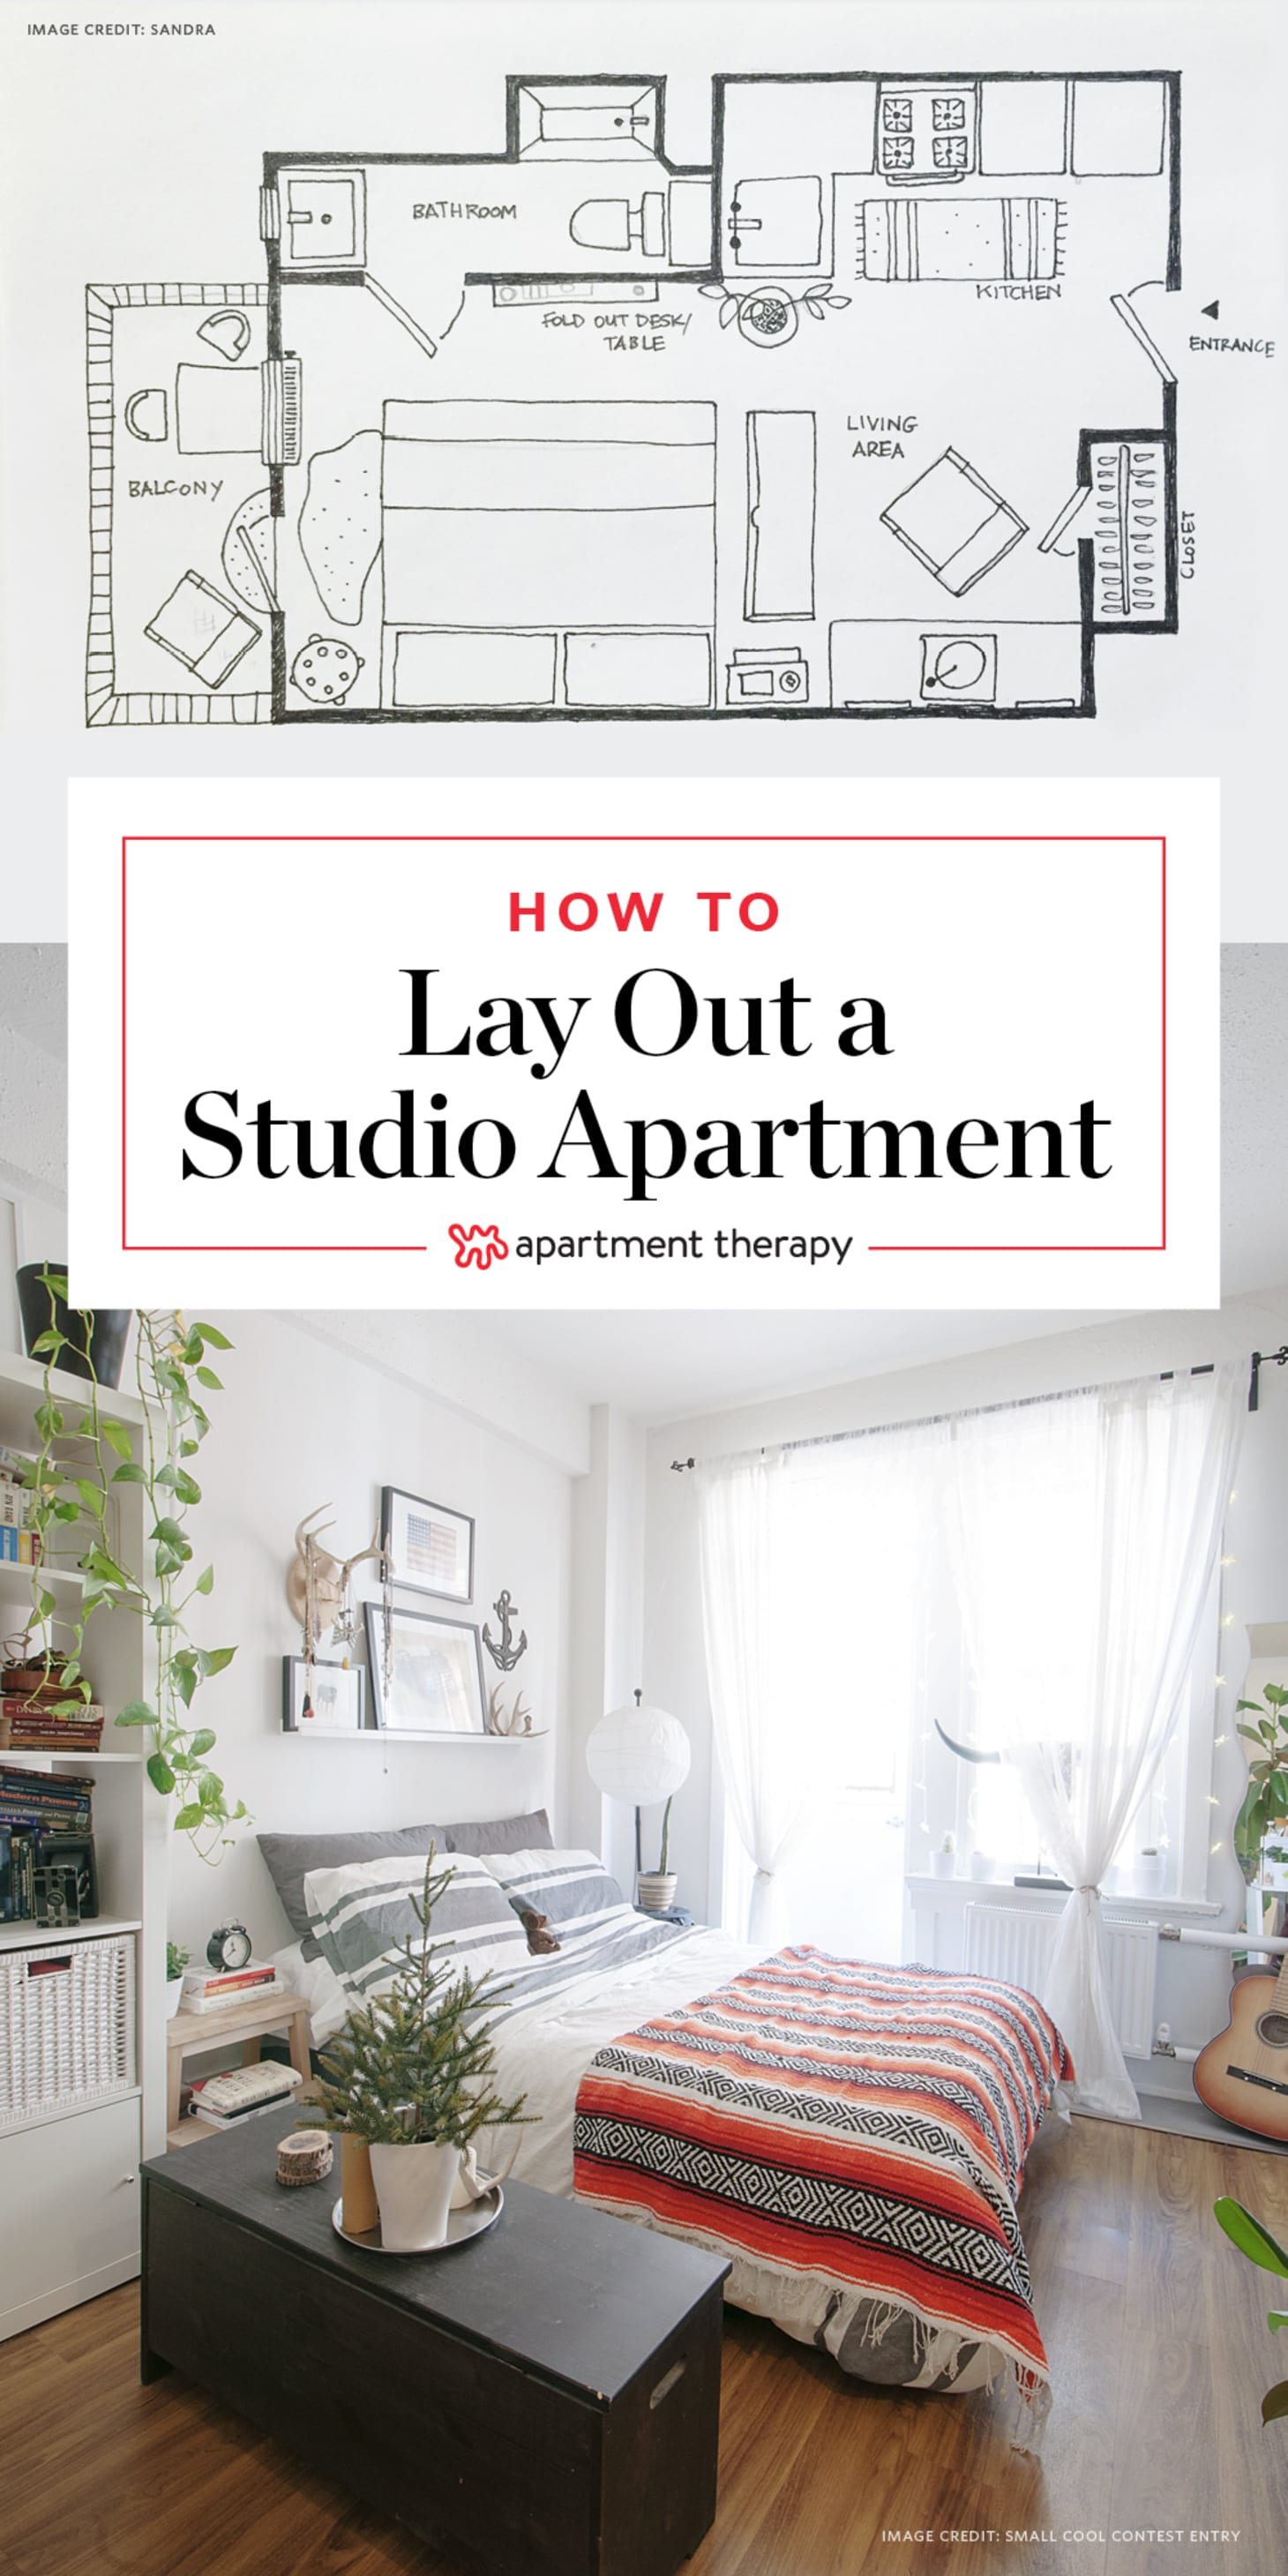 Swell 5 Ways To Lay Out A Studio Apartment Apartment Therapy Home Interior And Landscaping Ologienasavecom